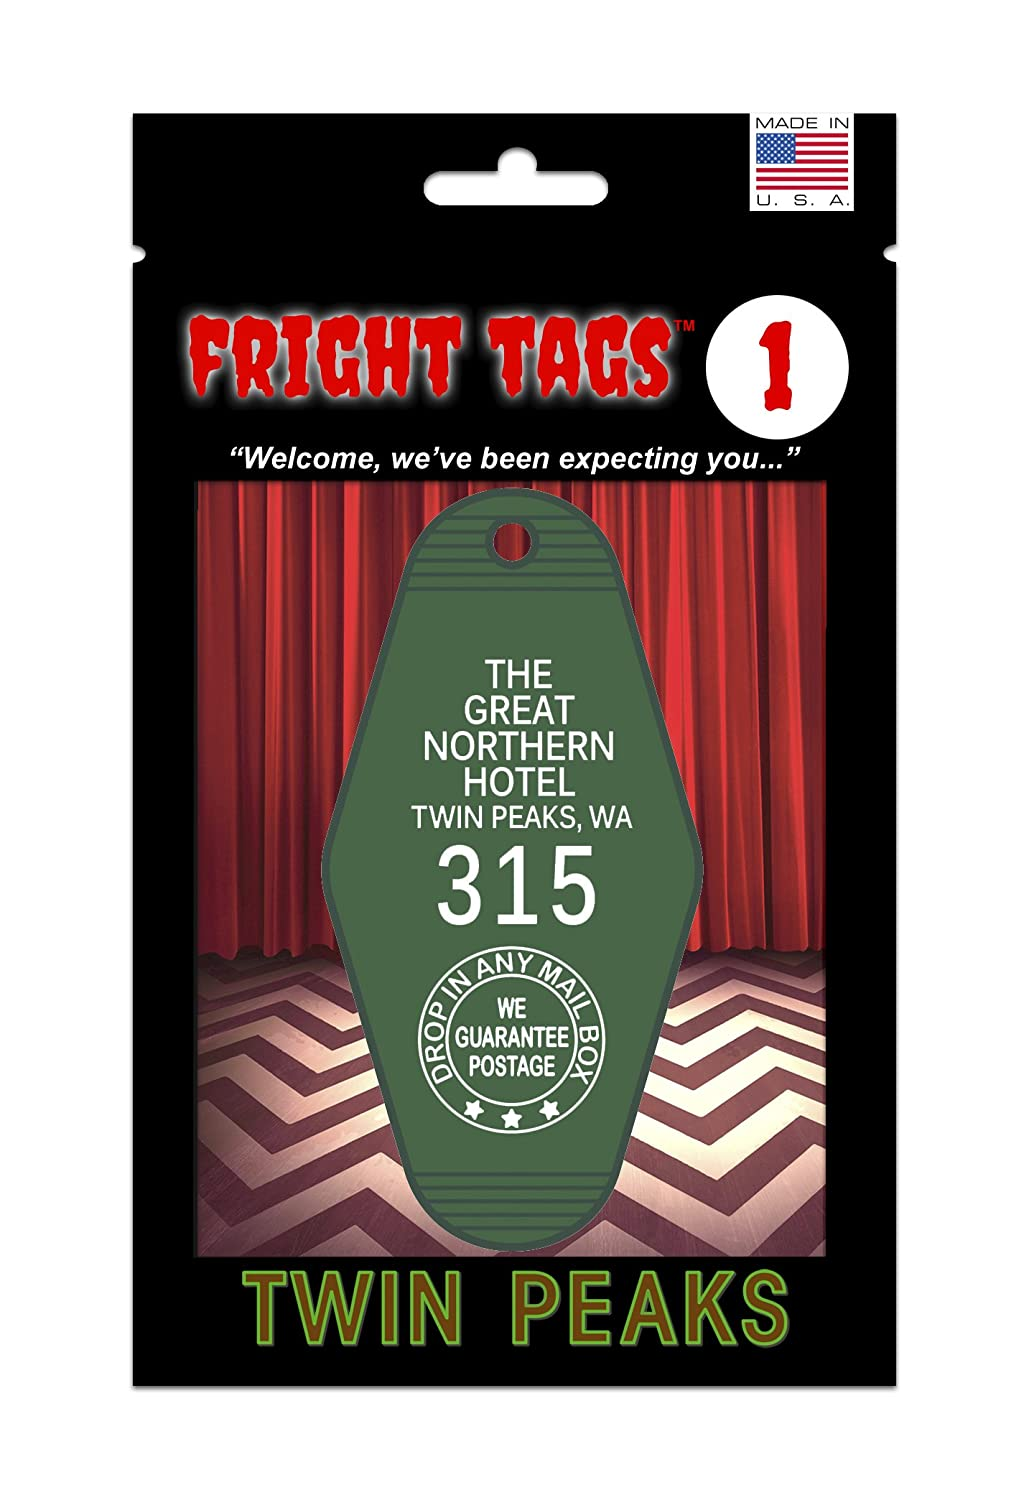 Fright Tags # 1 Key Tag - The Great Northern Hotel #315 - Twin Peaks GW and Son